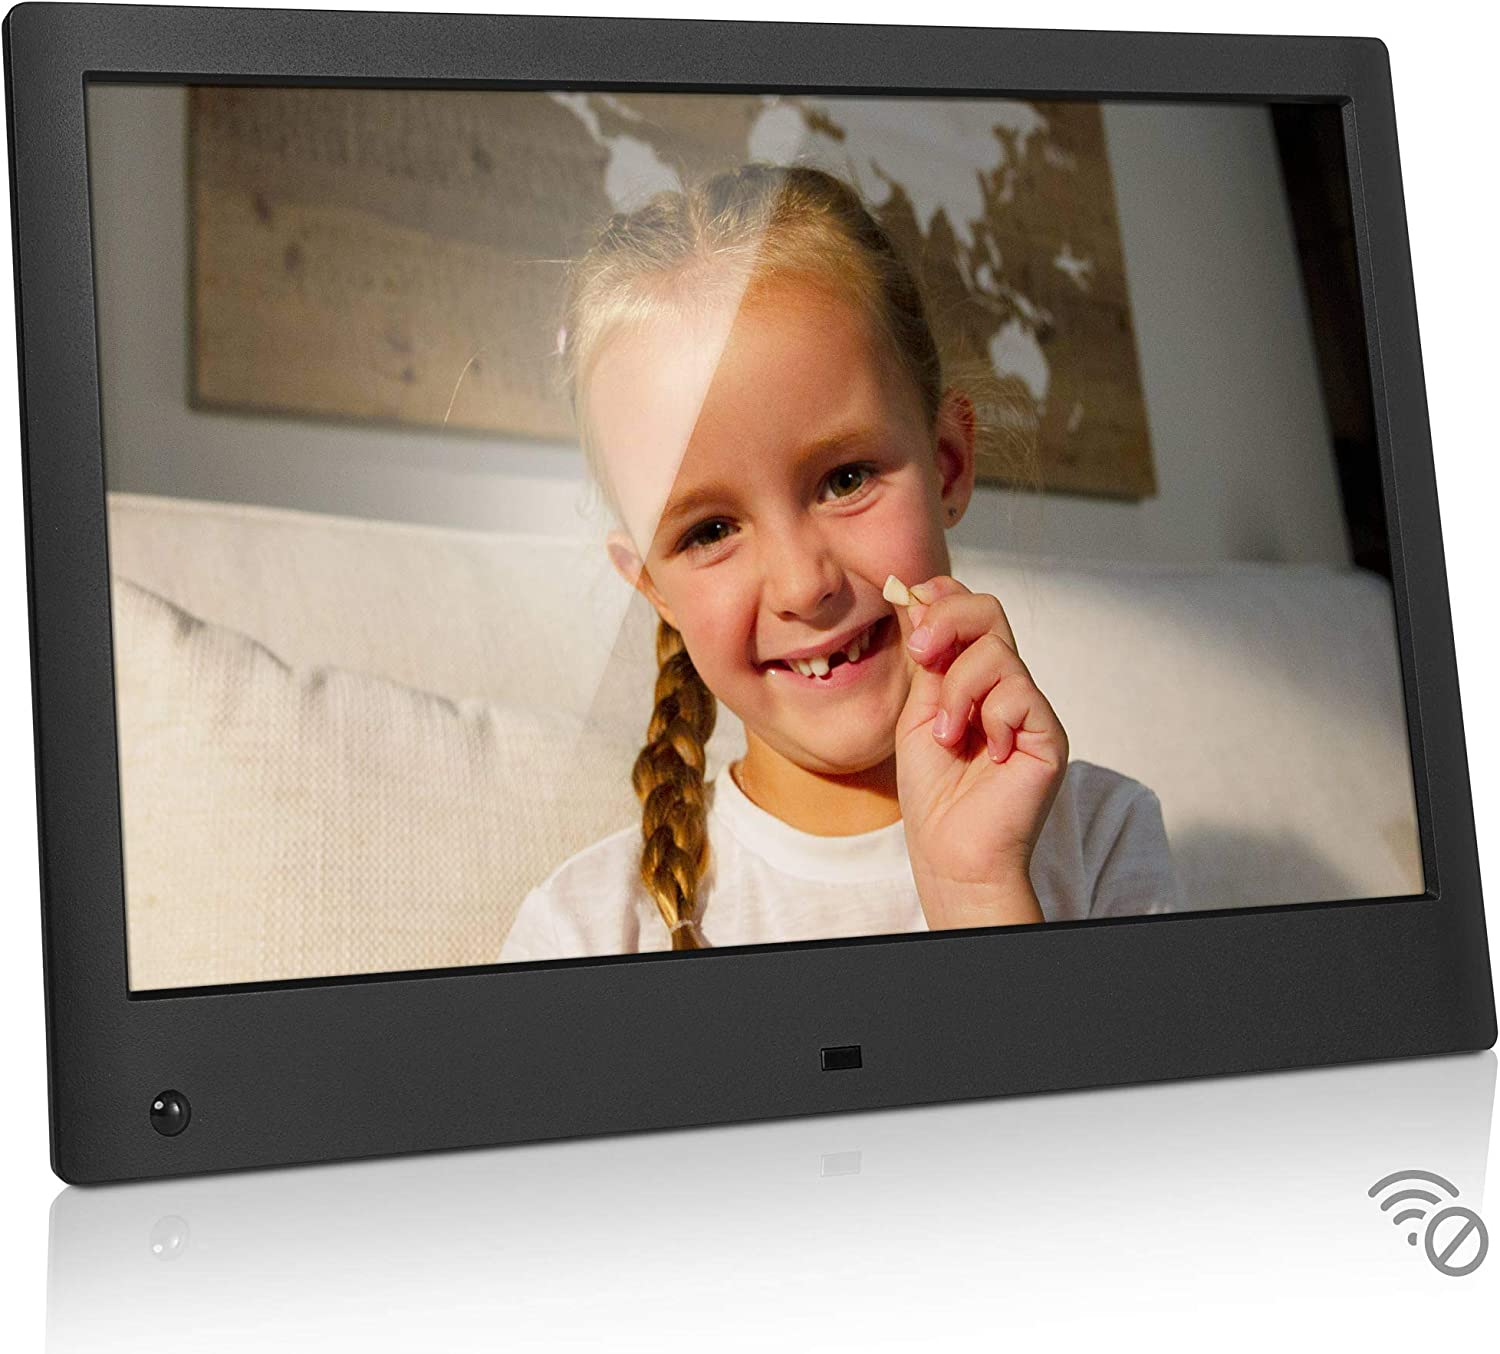 NIX Advance 13 Inch USB Digital Photo Frame